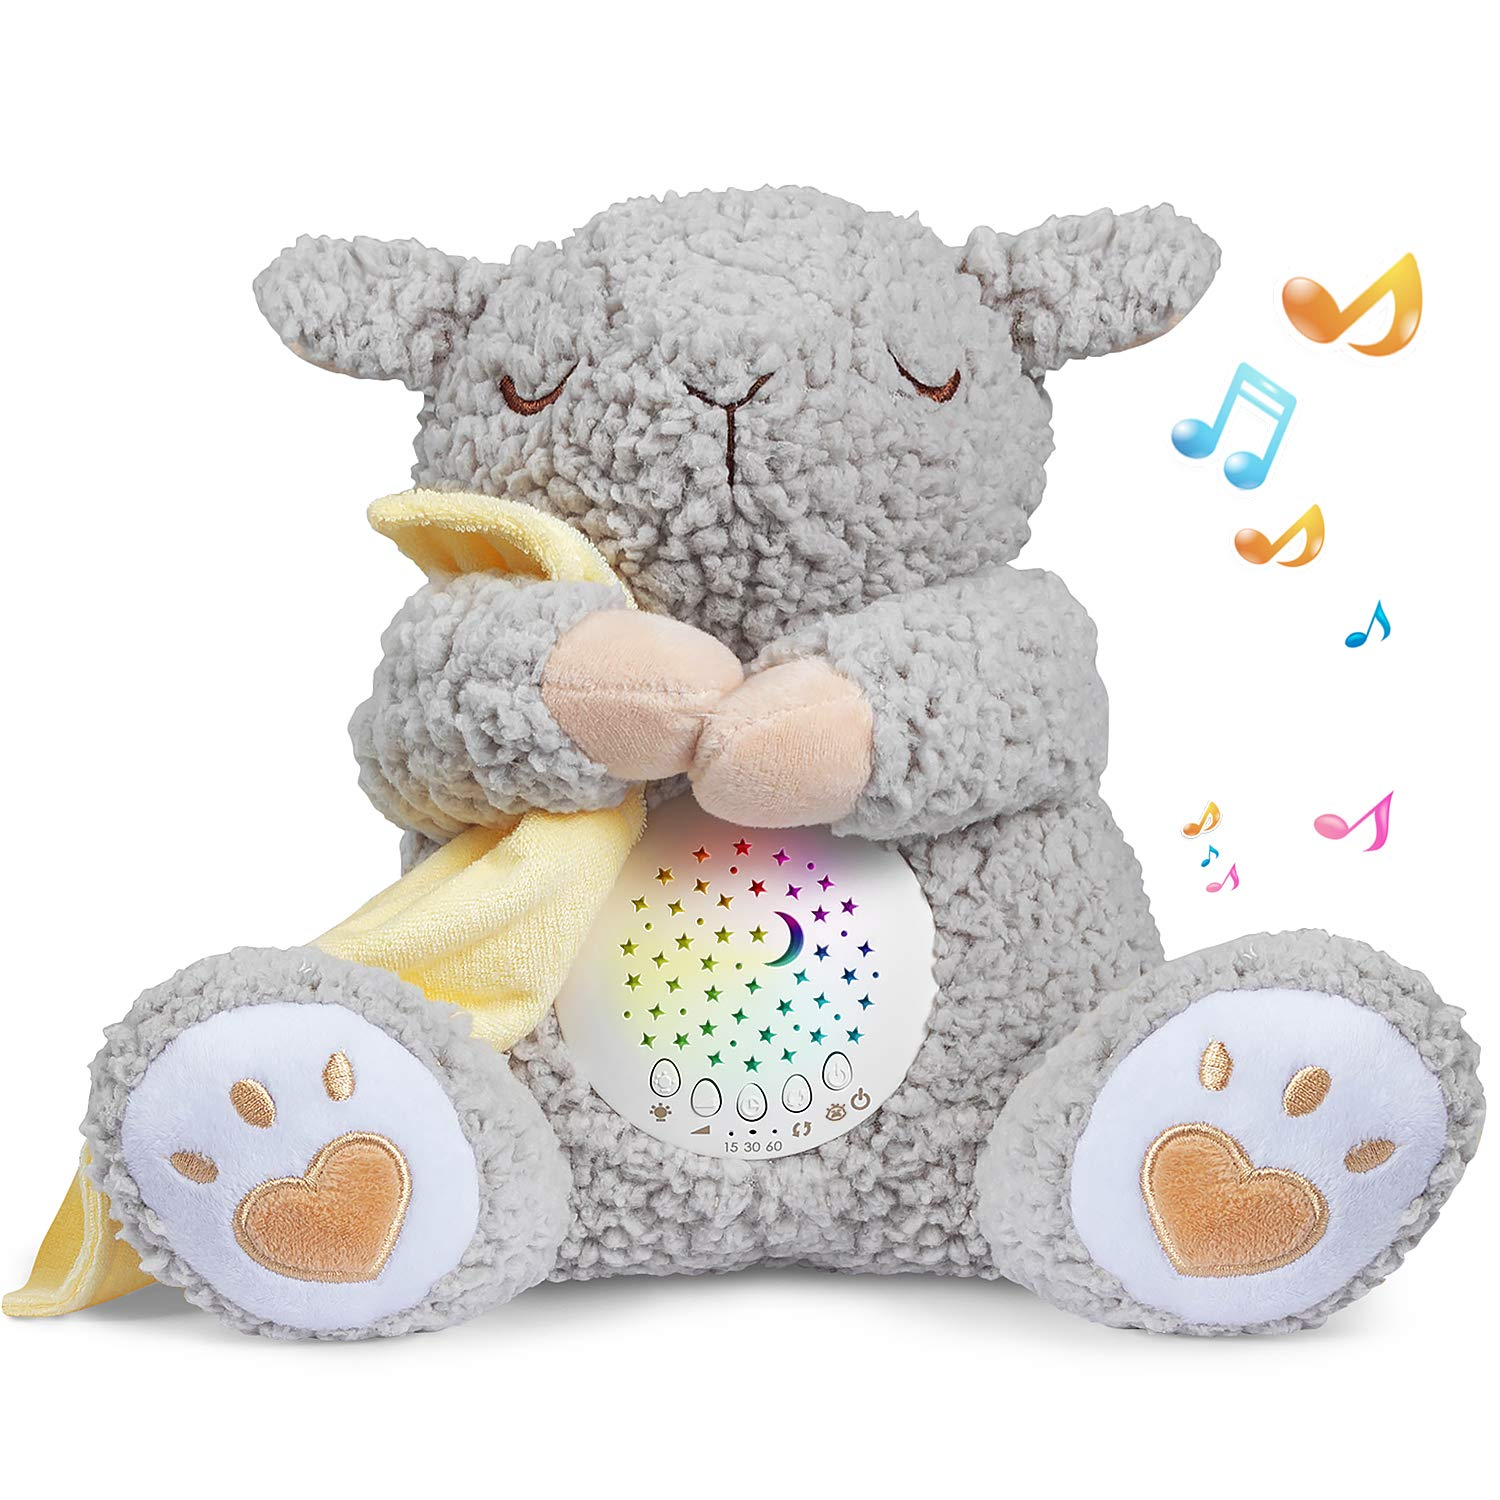 BEREST Rechargeable Regular store Dreamy Sheep Baby Sensor Dealing full price reduction Cry Heartbea Mom's